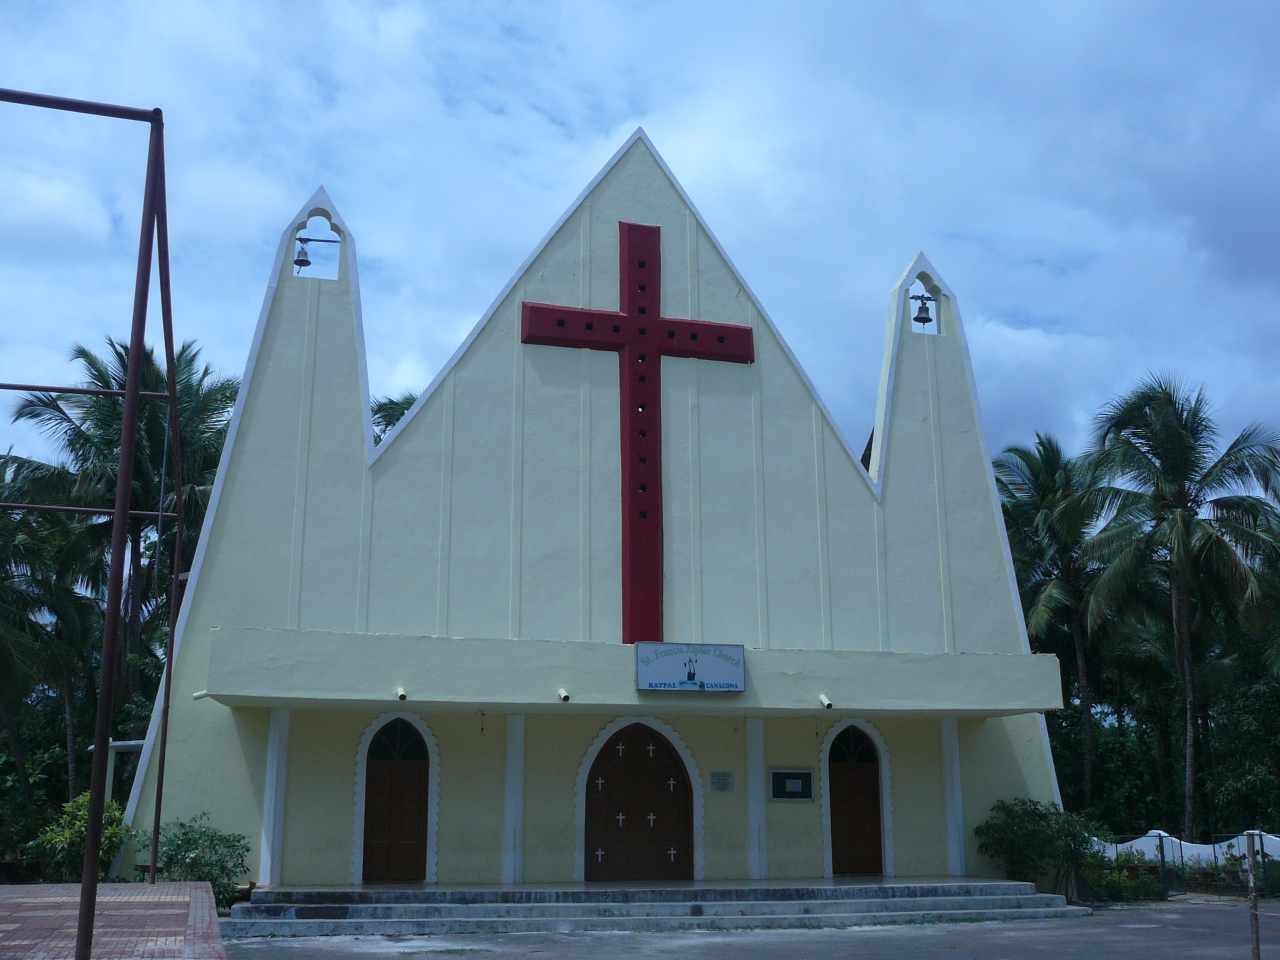 St Francis xavier church, Bhatpale, Goa